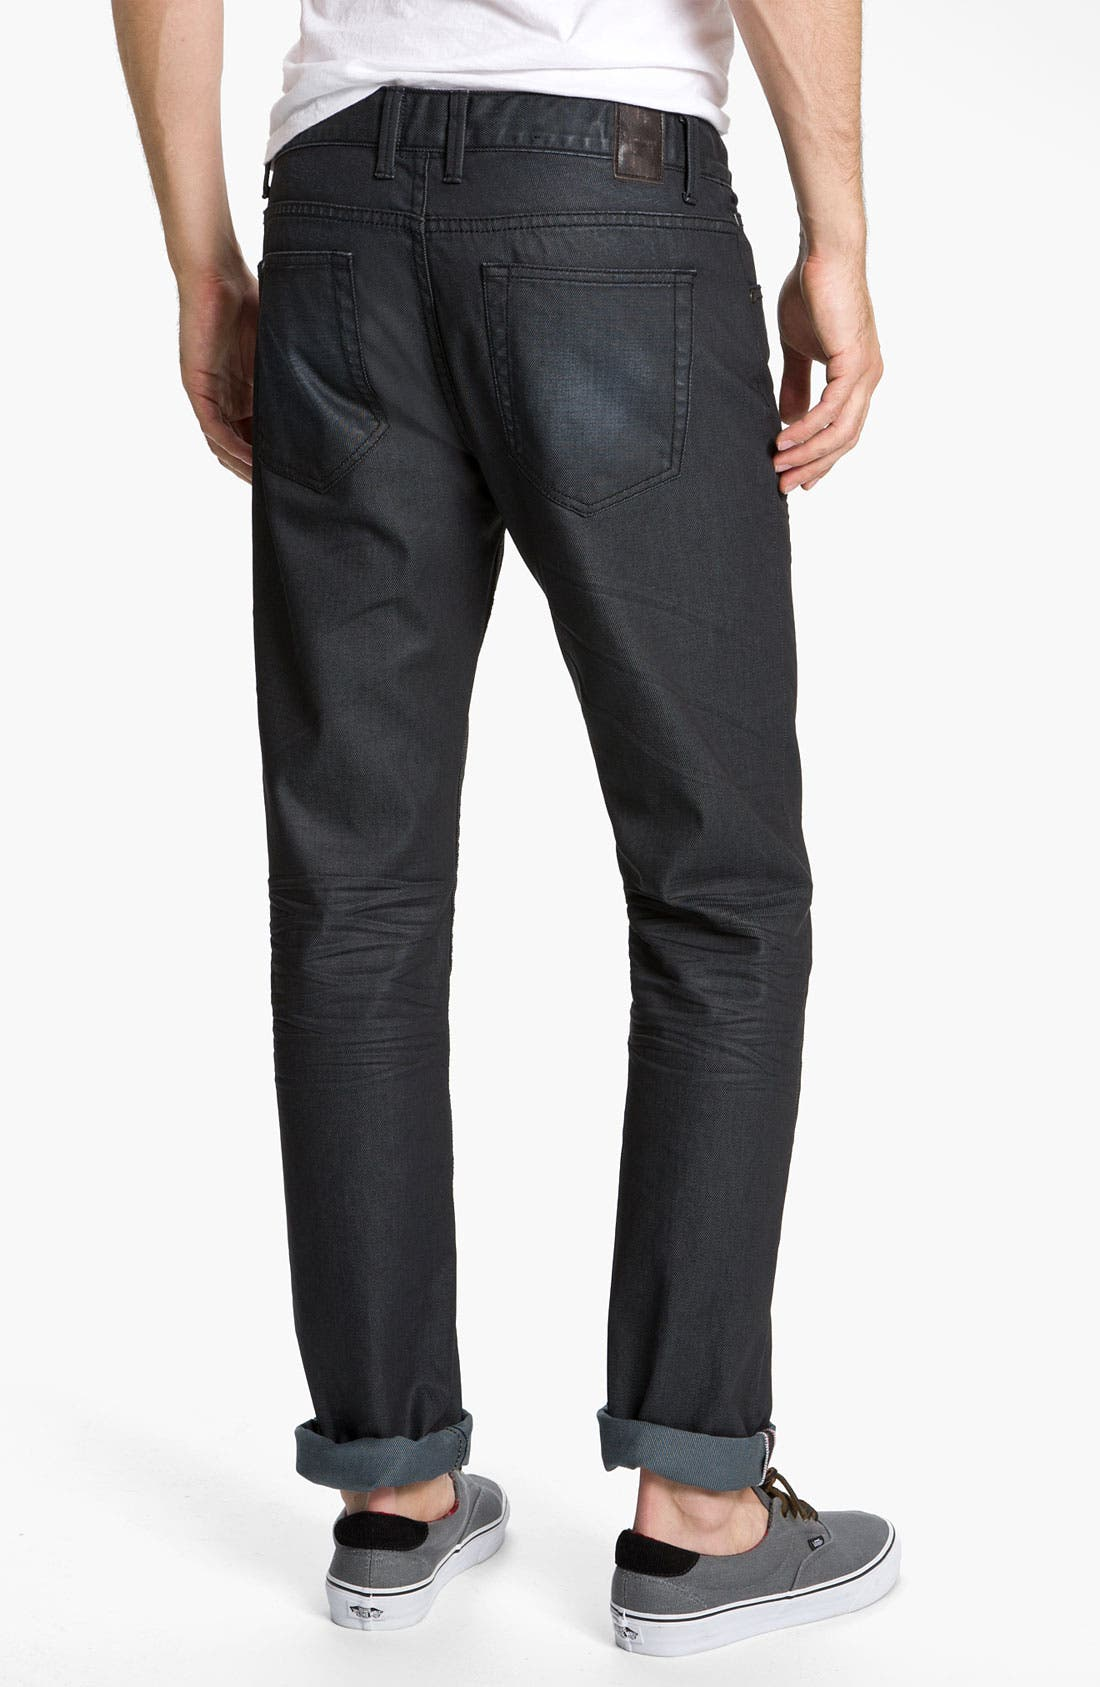 Main Image - Zanerobe 'Straight Mate' Coated Slim Straight Leg Jeans (Blue Black Wax)